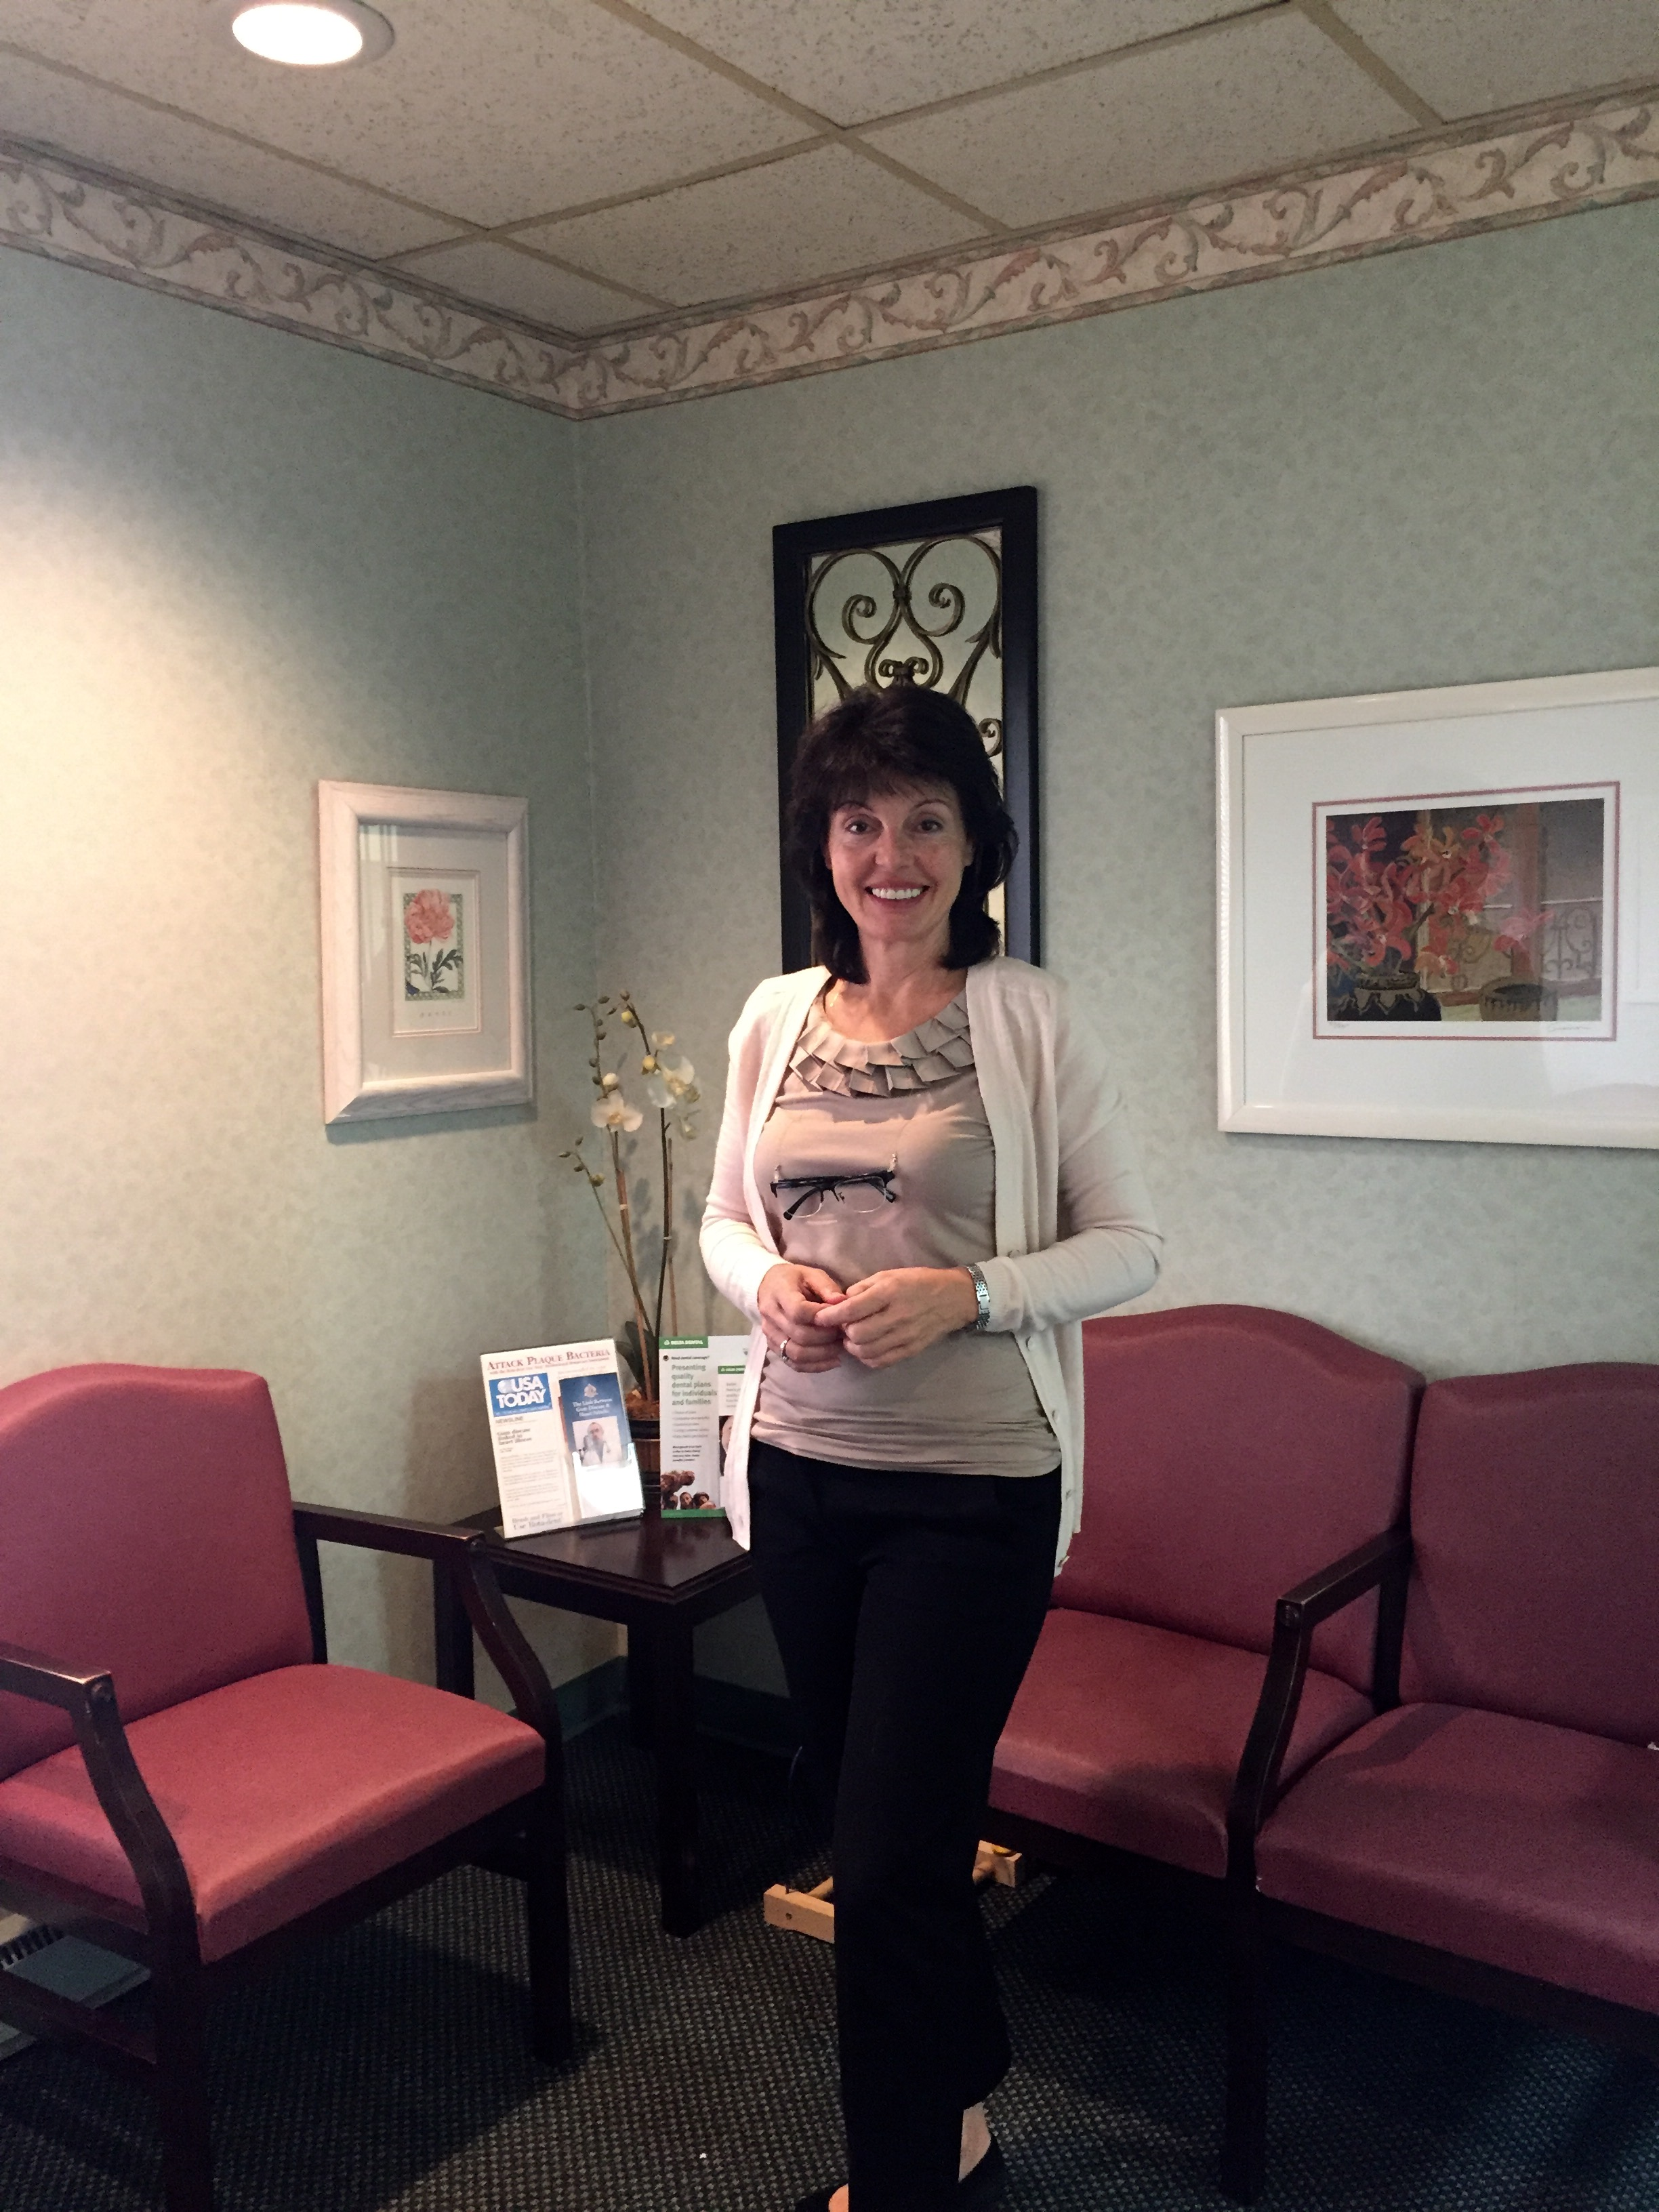 Sayreville Dentist in Parlin NJ Interviewed on General Dentistry Practices